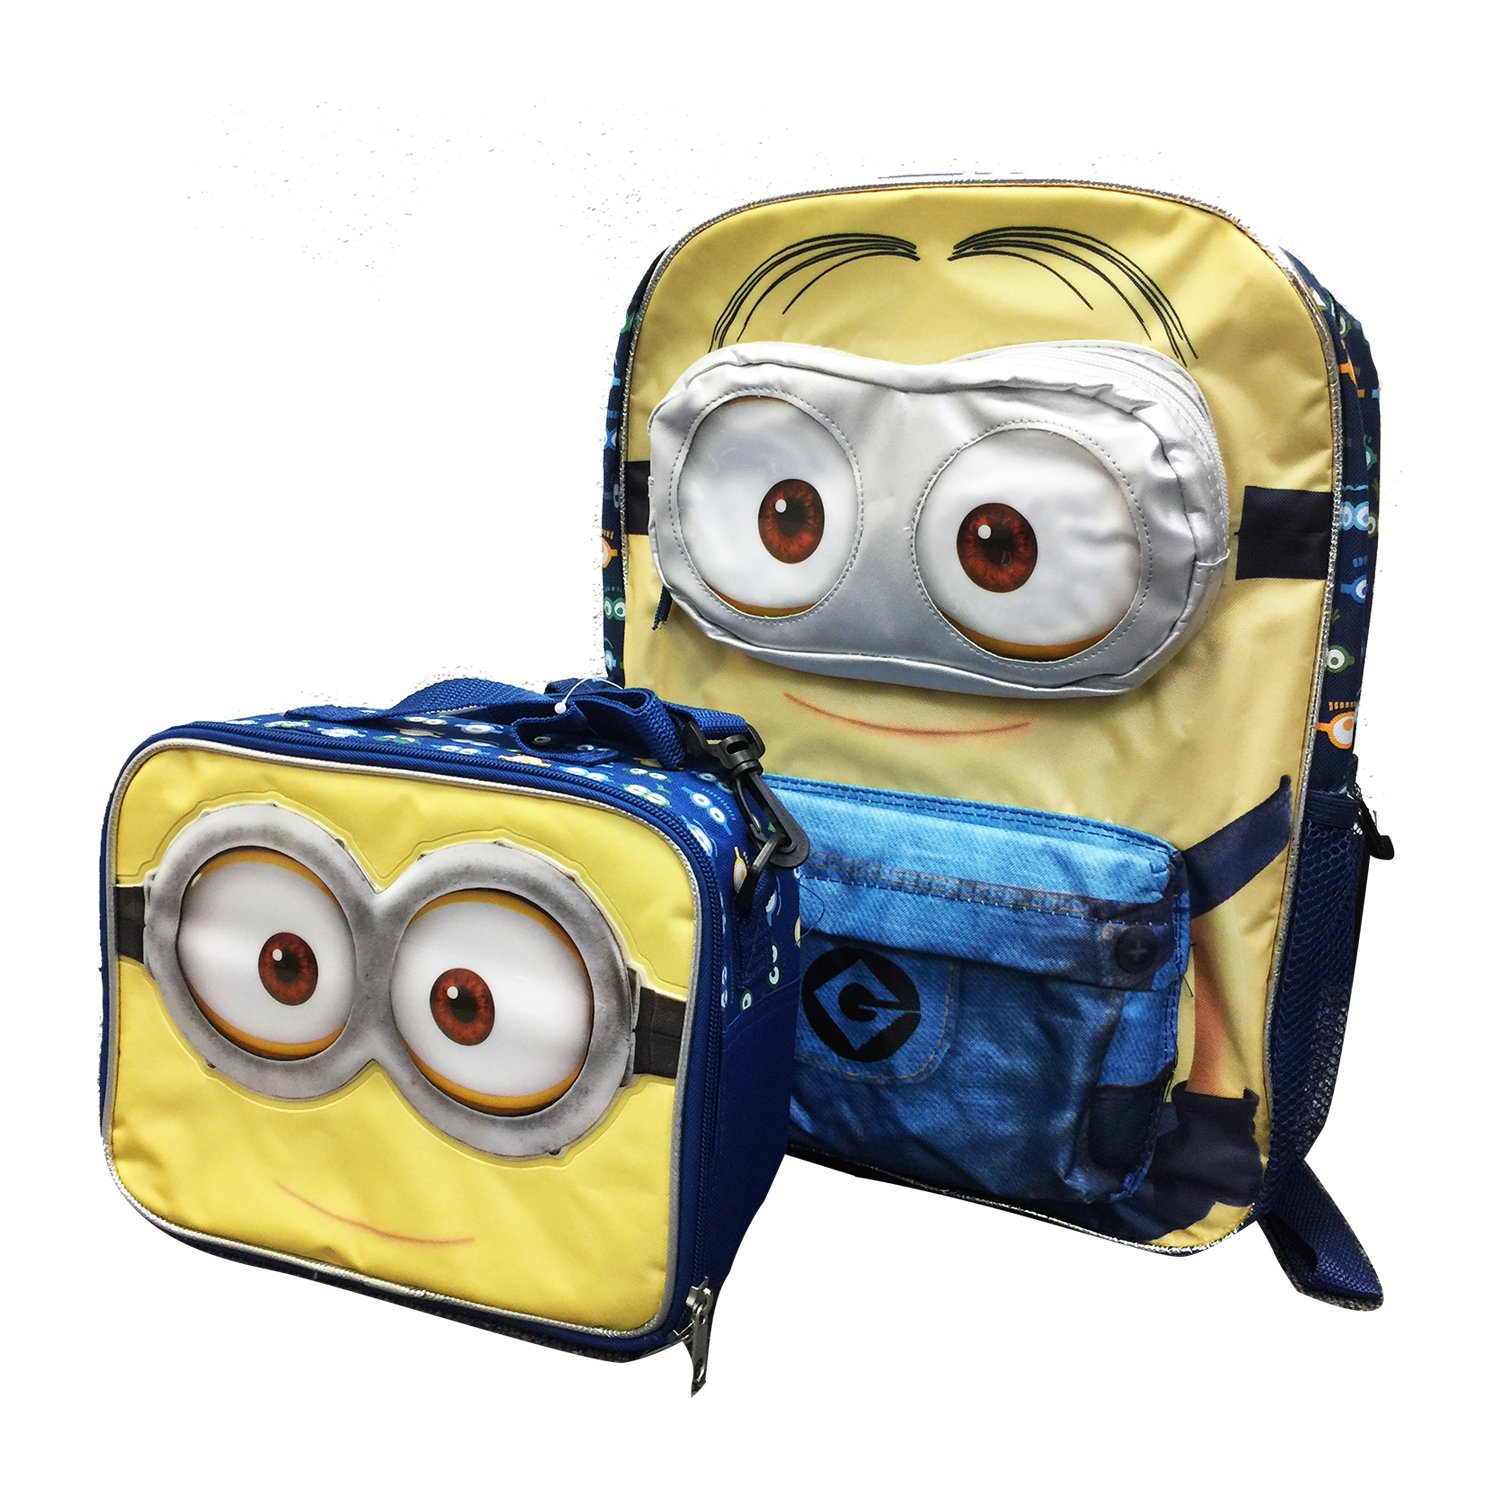 e6164020dd46 Amazon.com: Despicable Me Minions Backpack with Detachable Insulated ...